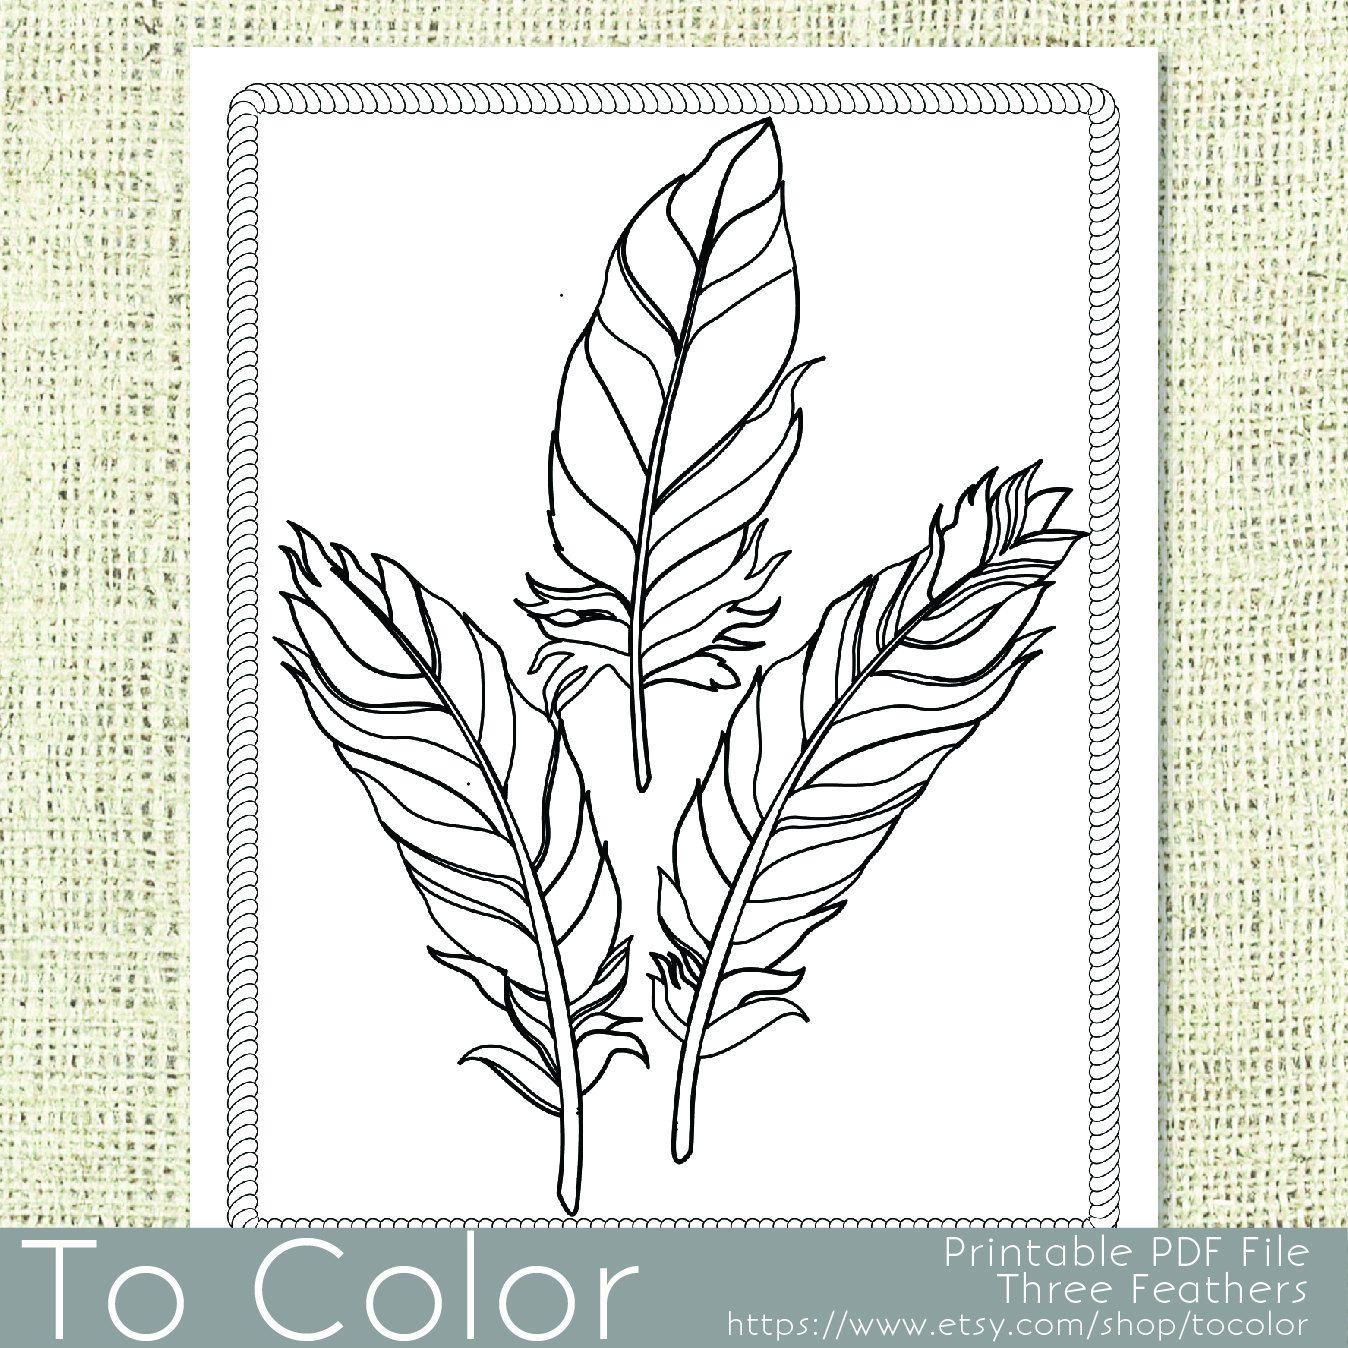 Sw swear word coloring pages etsy - Printable Feathers Coloring Page For Adults Pdf Jpg Instant Download Coloring Book Download Image Sw Swear Word